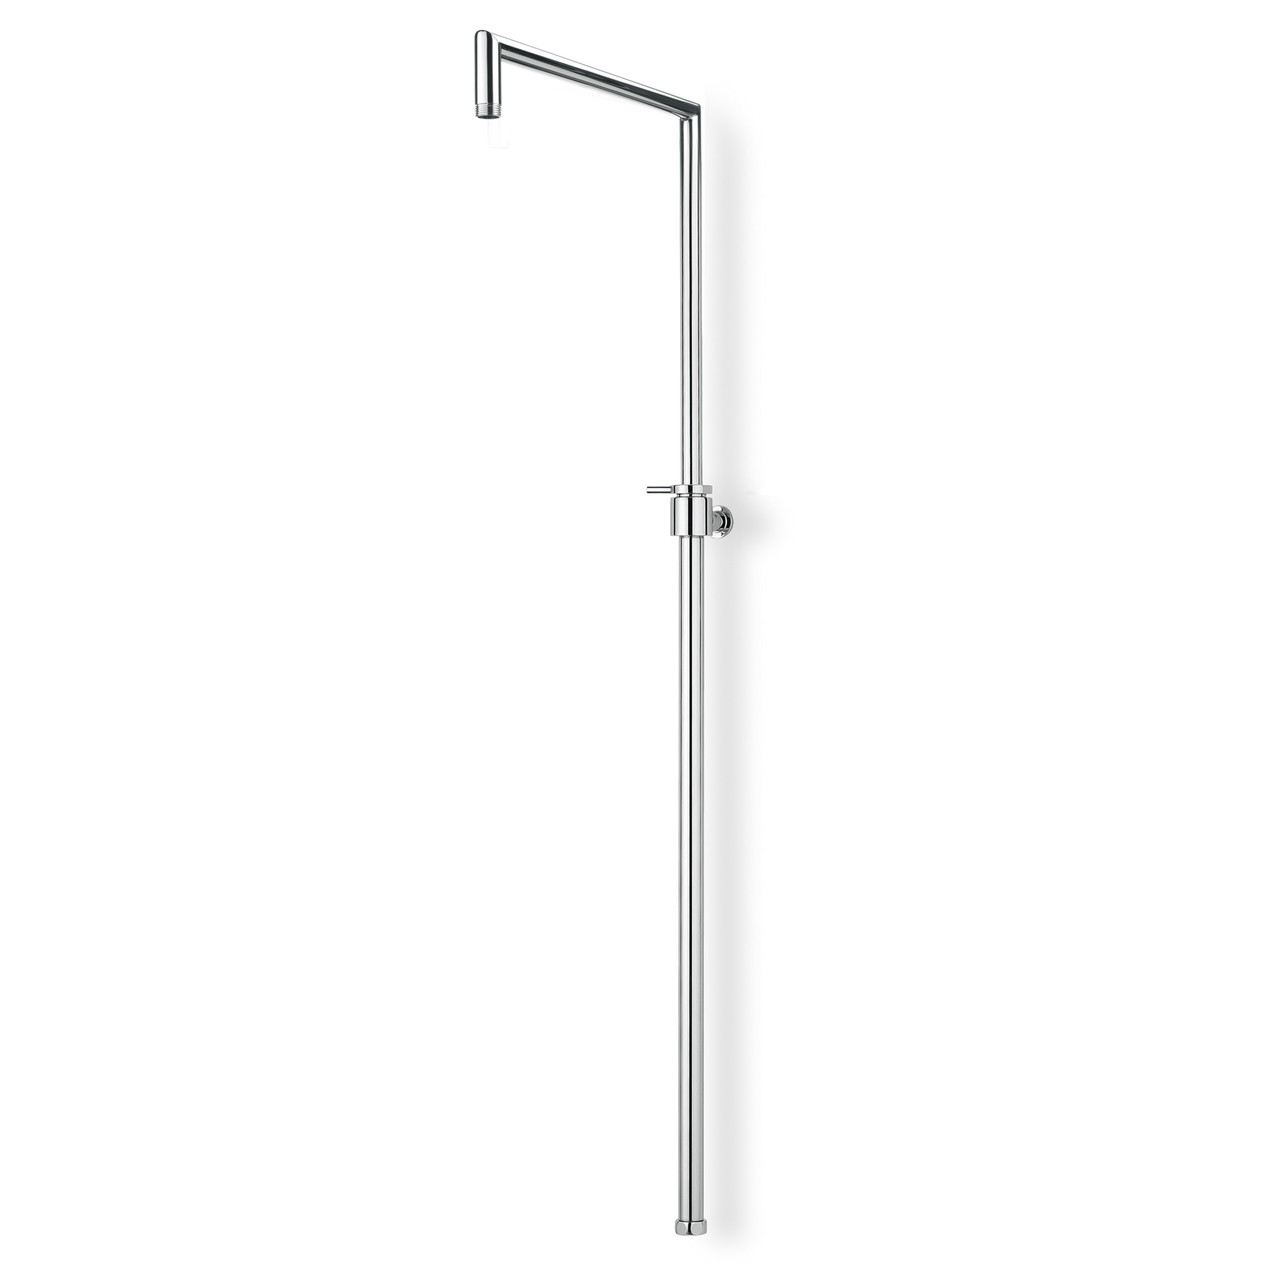 Telescopic square shower column